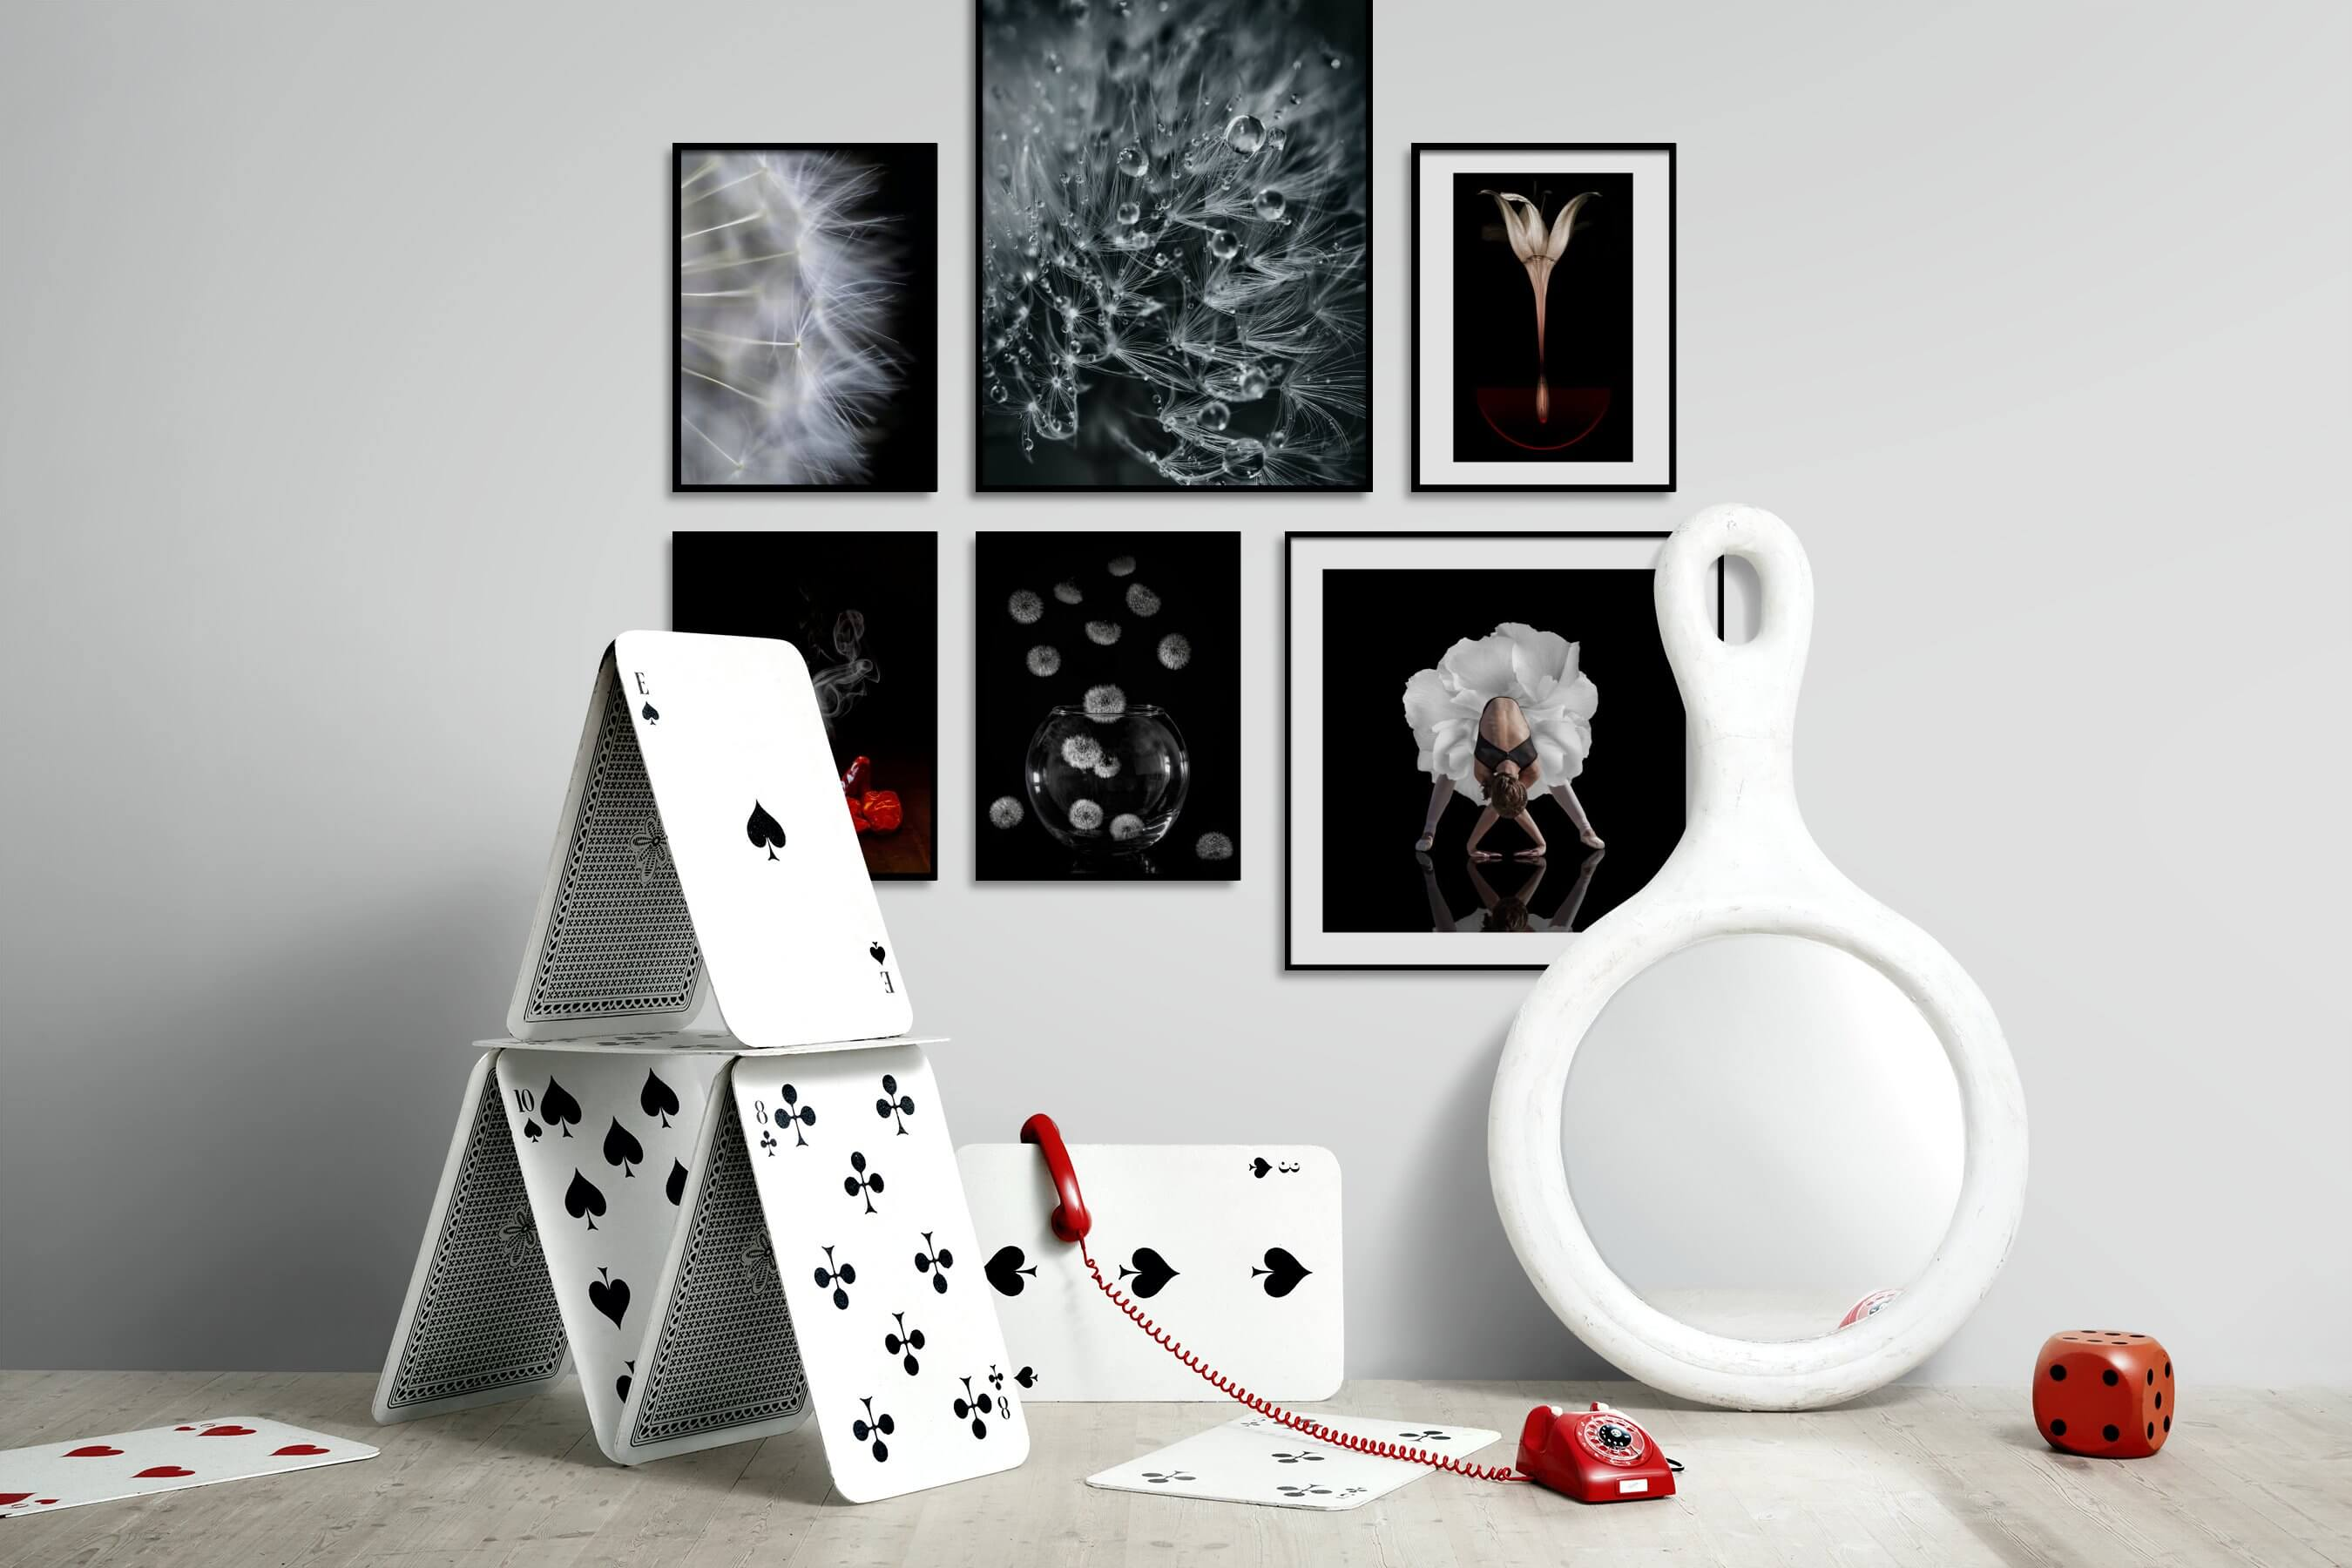 Gallery wall idea with six framed pictures arranged on a wall depicting Flowers & Plants, Mindfulness, Black & White, Dark Tones, For the Minimalist, For the Moderate, and Fashion & Beauty